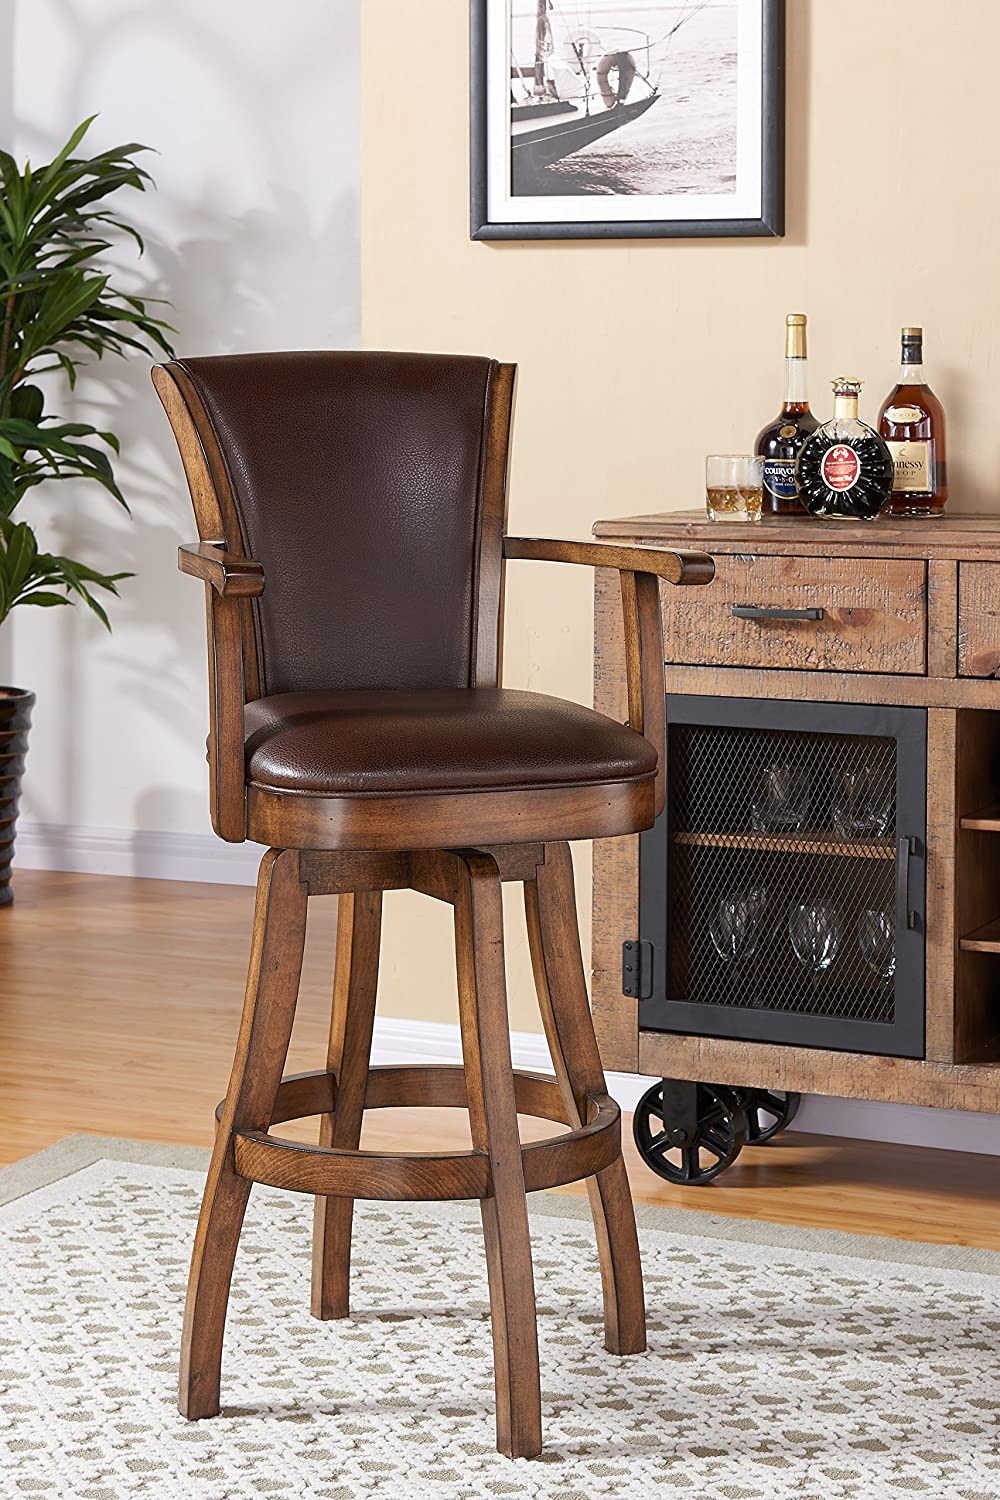 Groovy Armen Living Lcrabaarkach30 Raleigh Arm 30 Bar Height Swivel Barstool In Kahlua Faux Leather And Chestnut Wood Finish Ncnpc Chair Design For Home Ncnpcorg